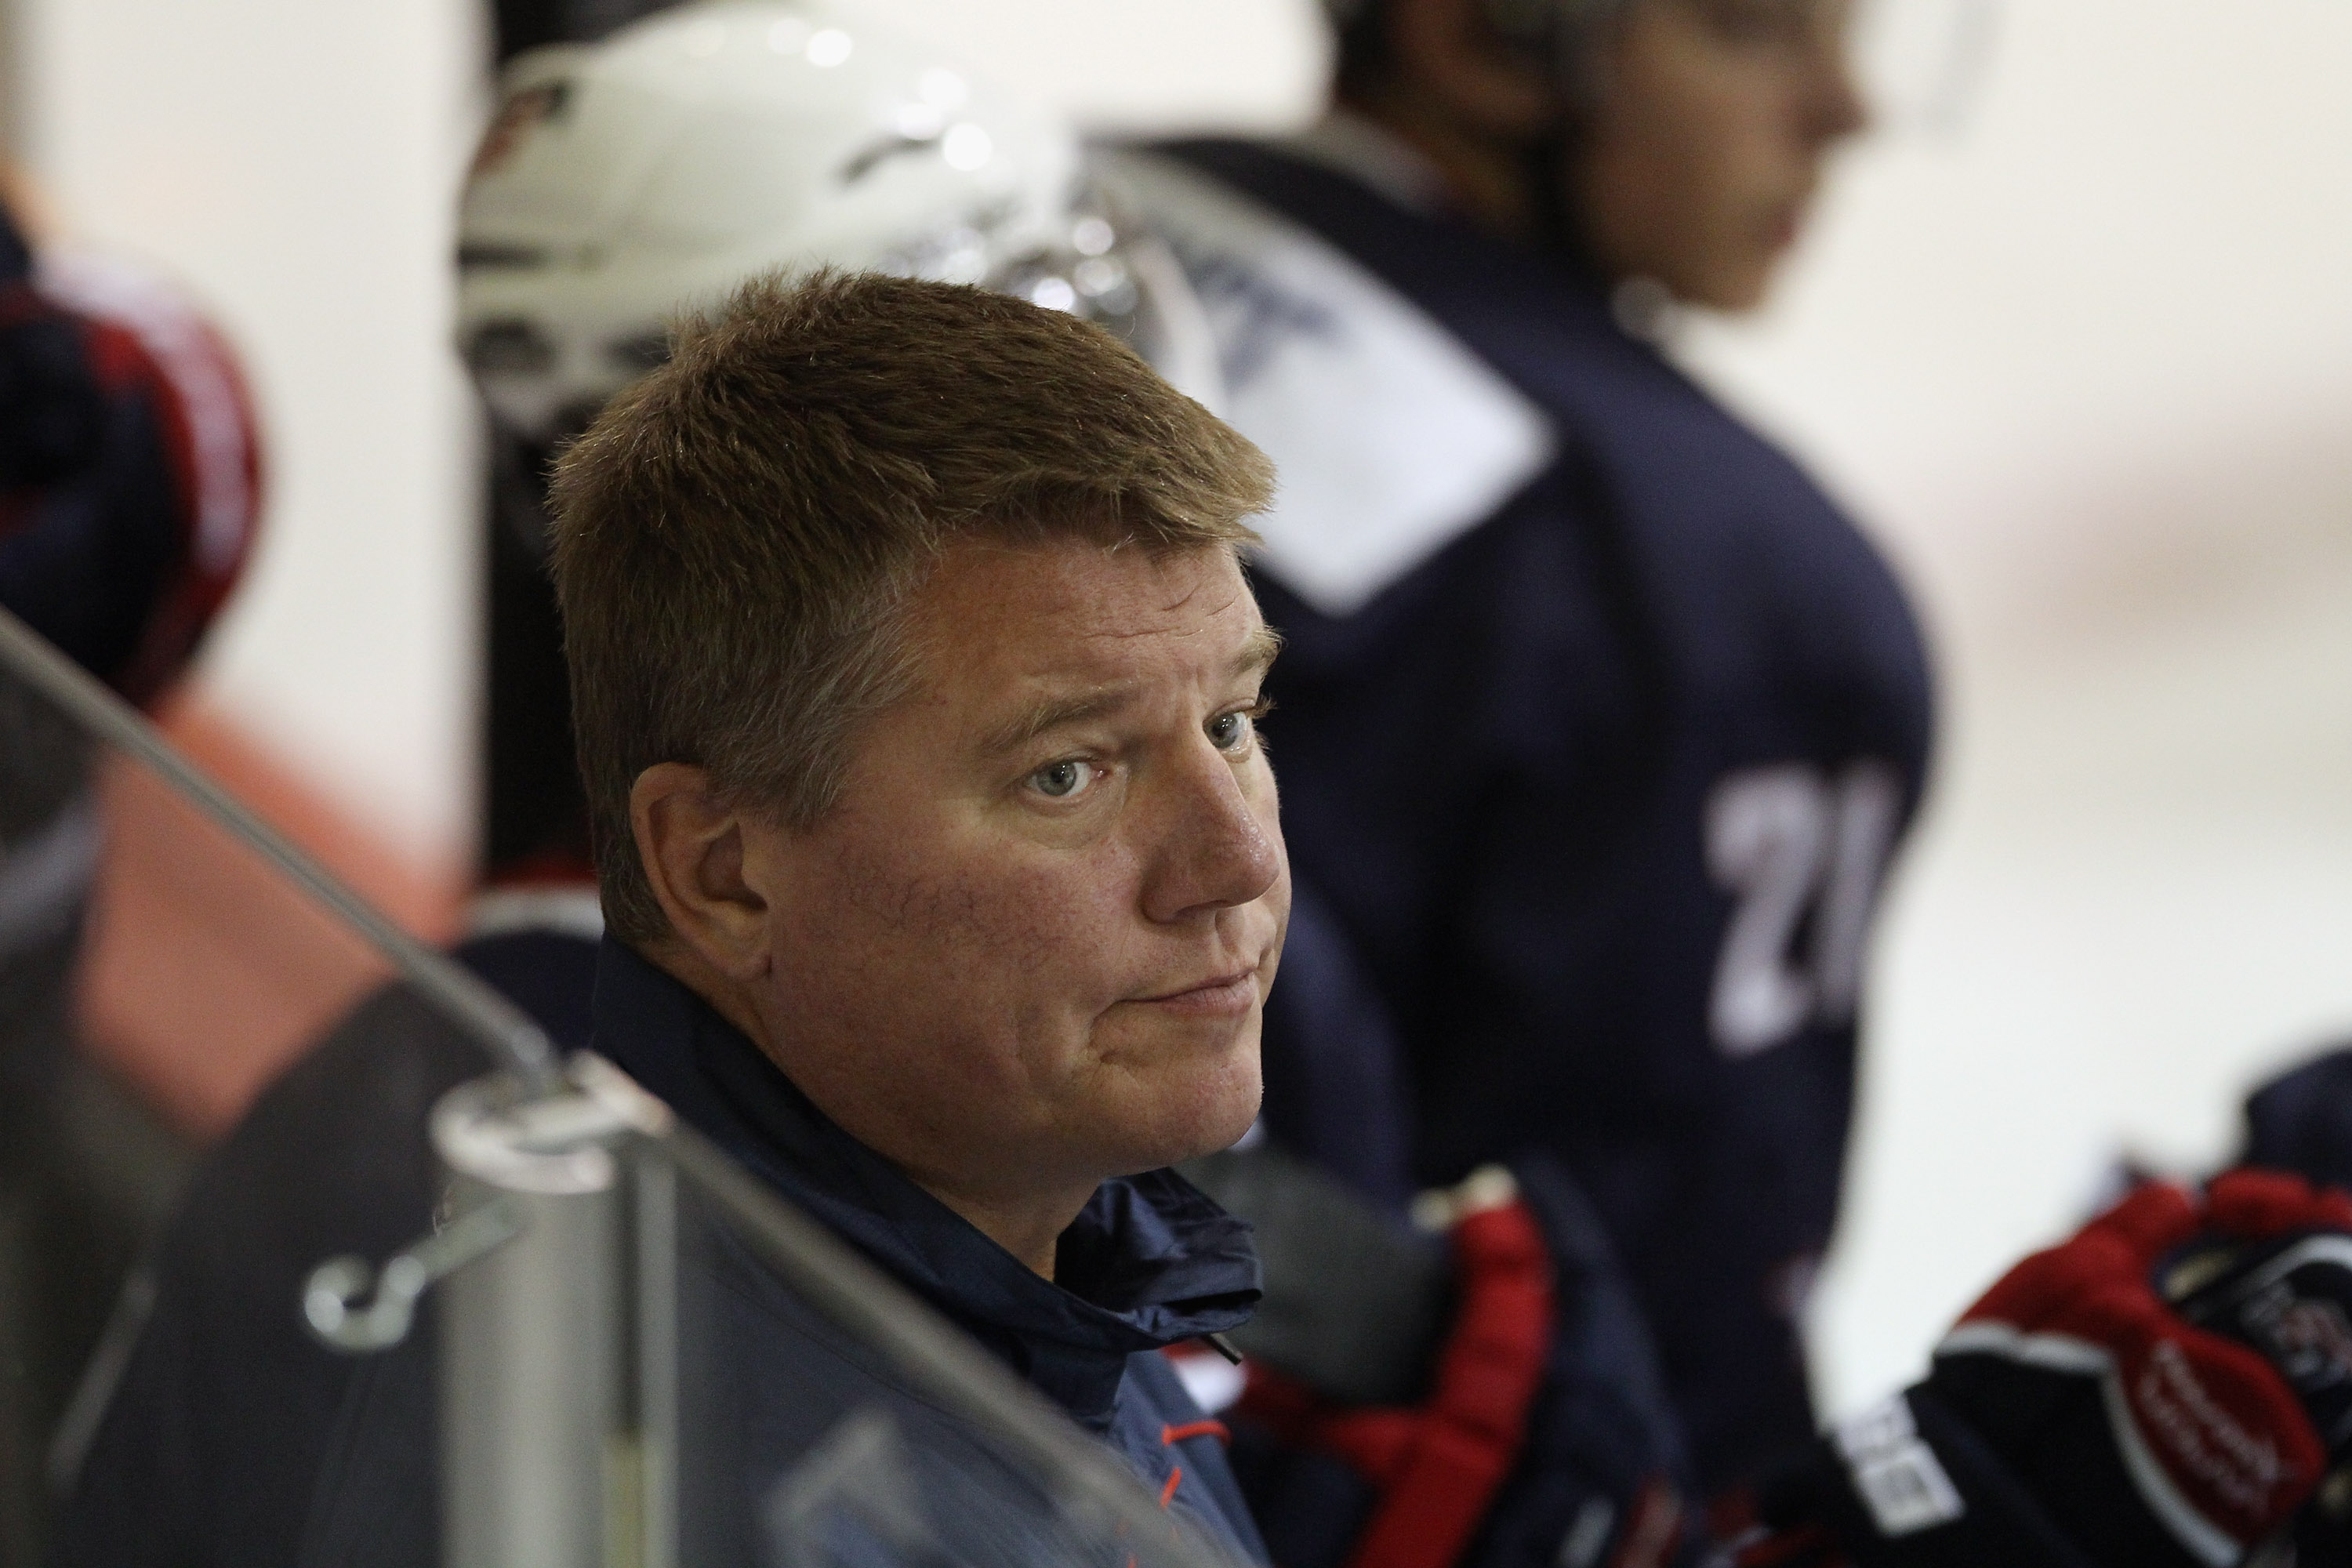 Tom Ward coached for Team USA during the 2011 USA Hockey Junior Evaluation Camp in Lake Placid. (Getty Images)